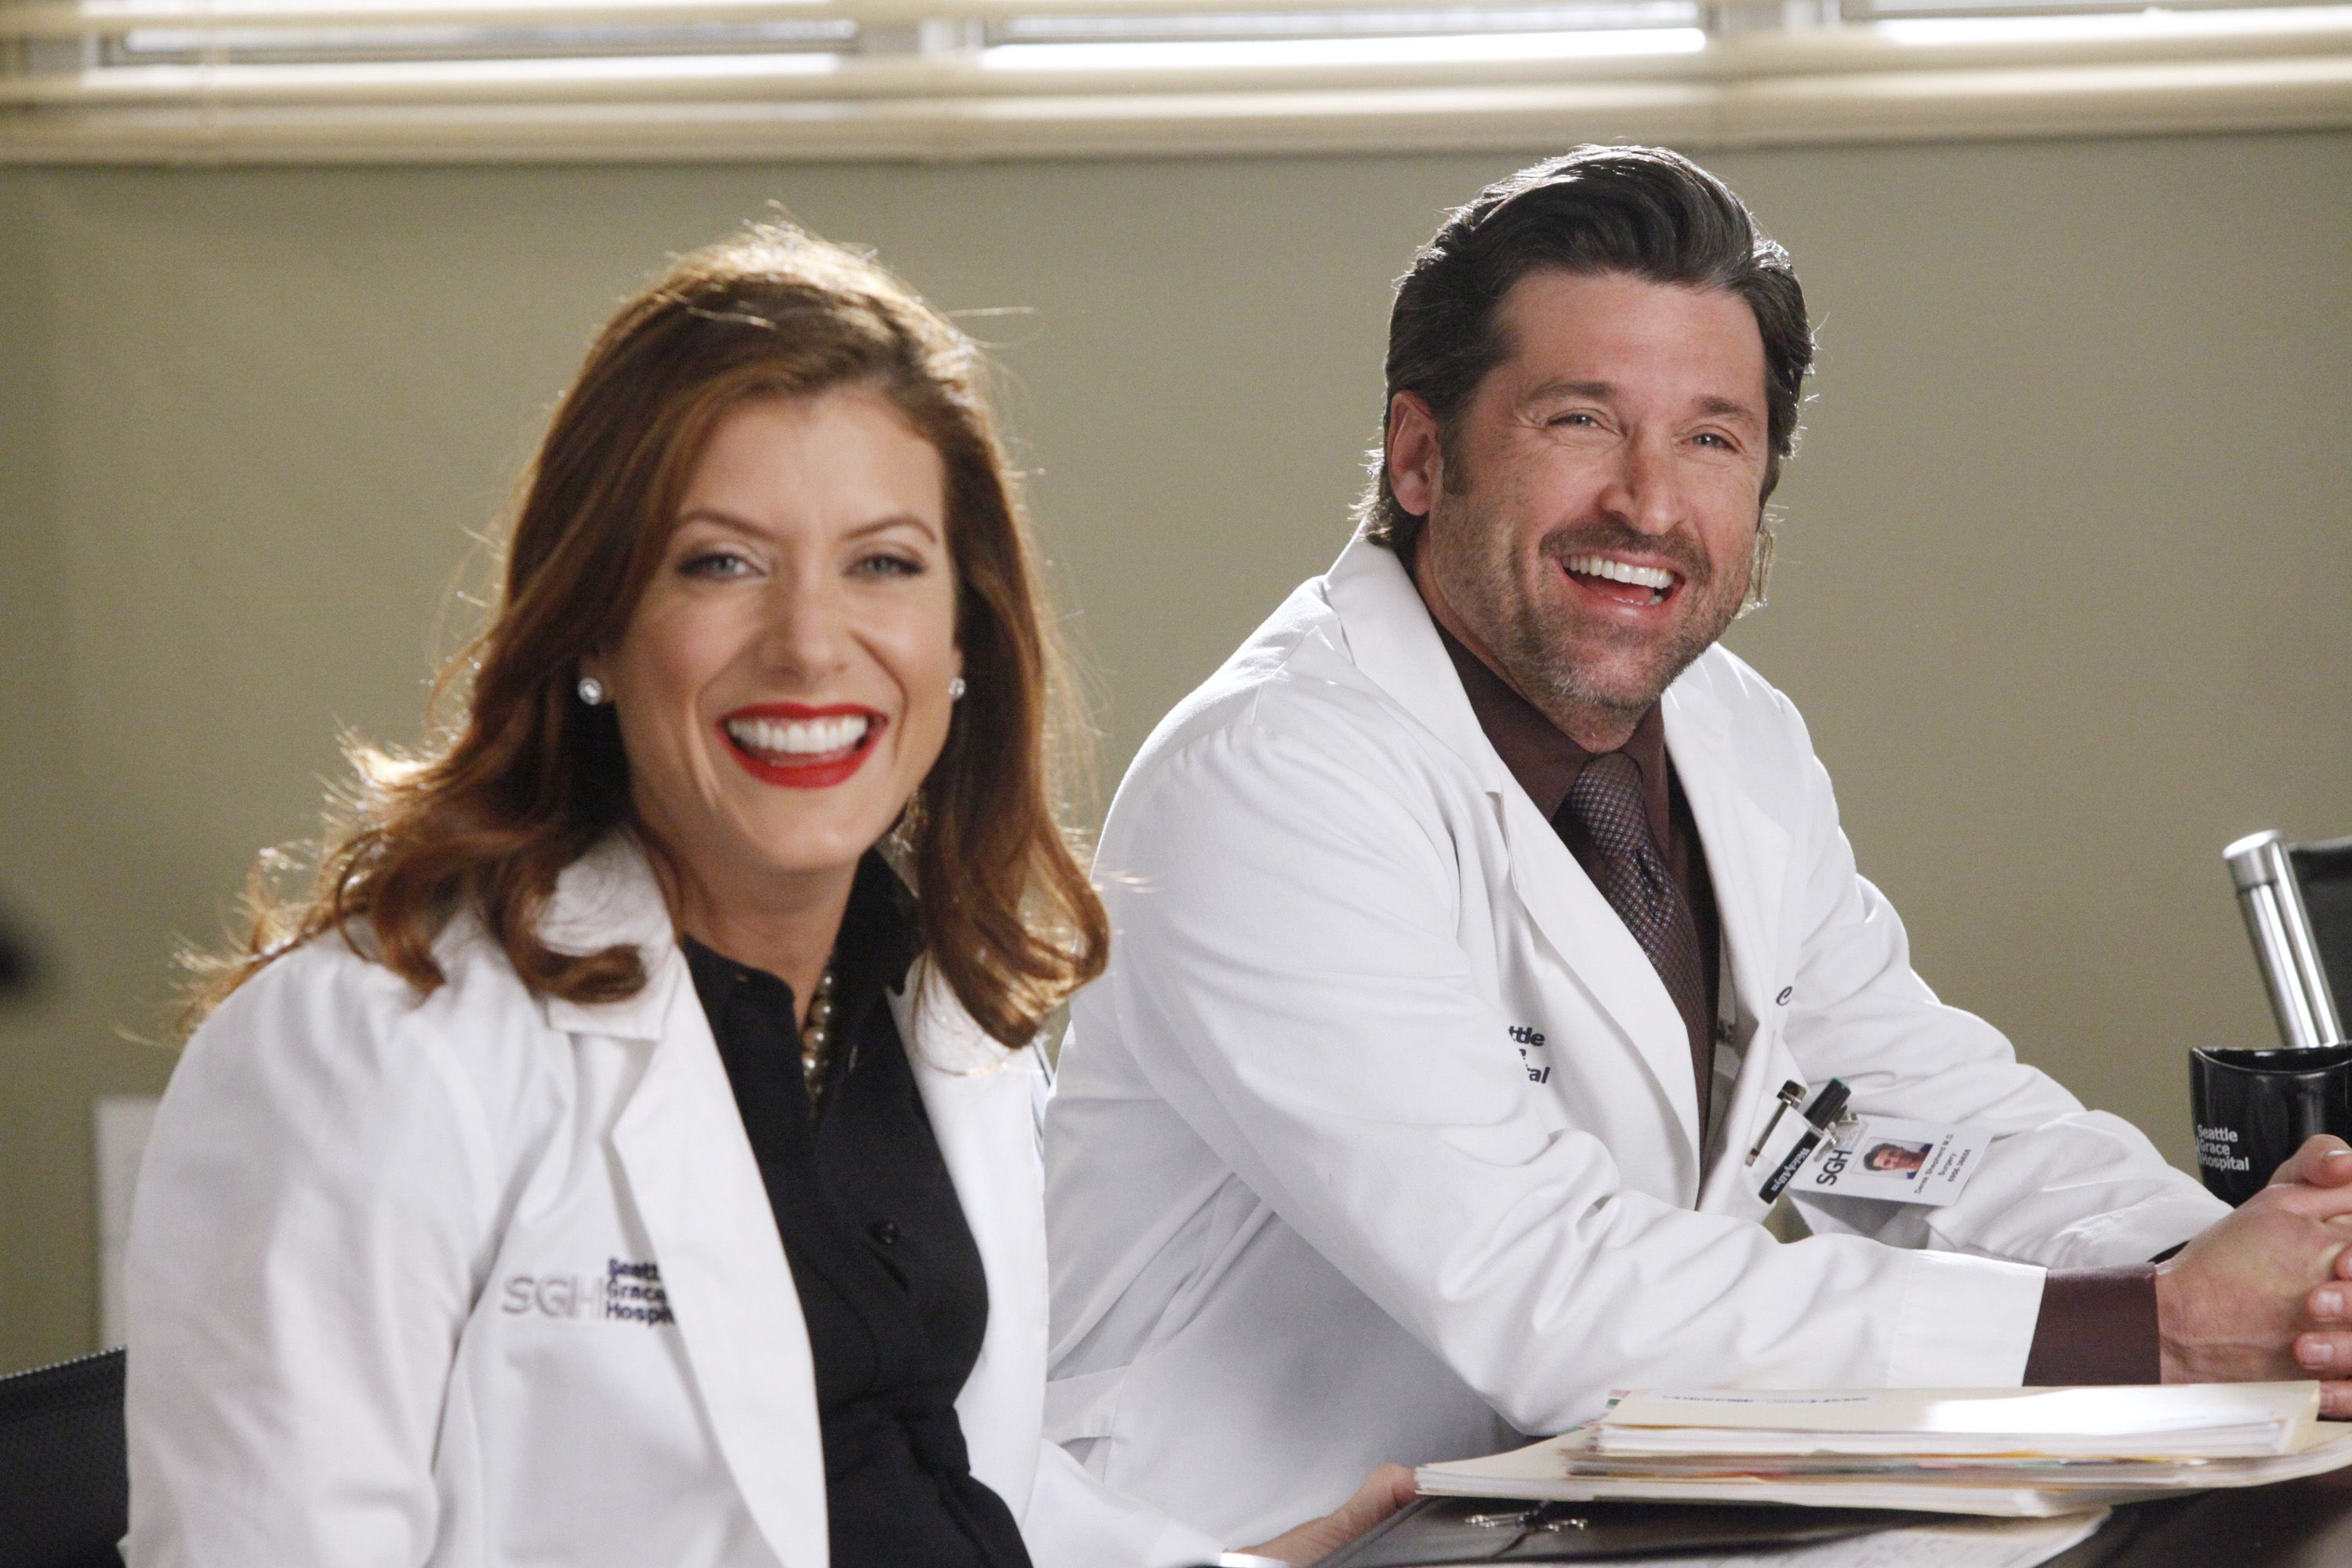 Patrick Dempsey Calls Greys Anatomy Star Kate Walsh Beautiful On